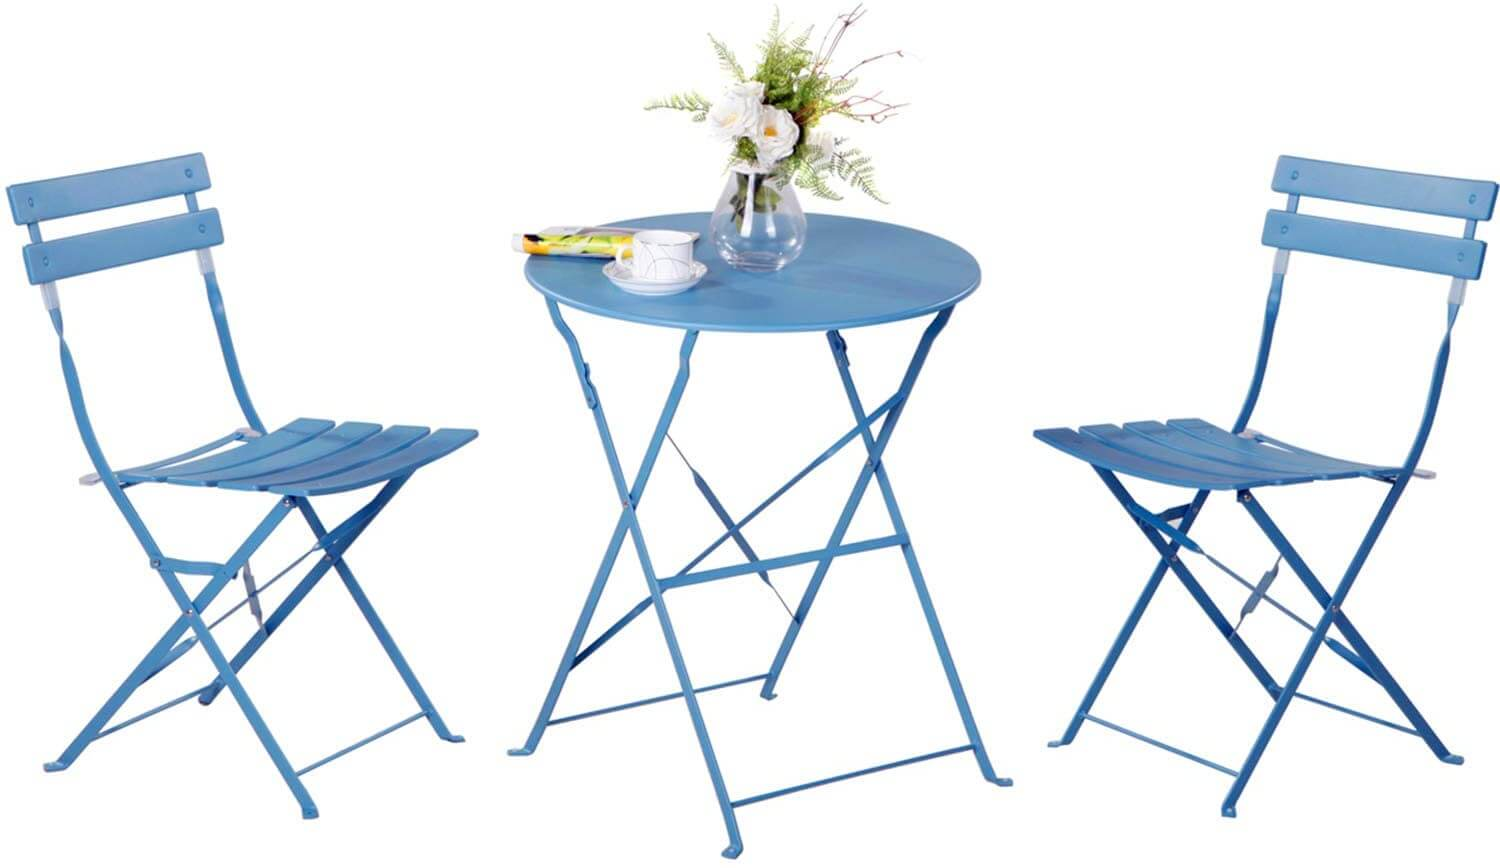 PRETTY BLUE FOLDING PATIO TABLE AND CHAIRS DESIGN IDEAS